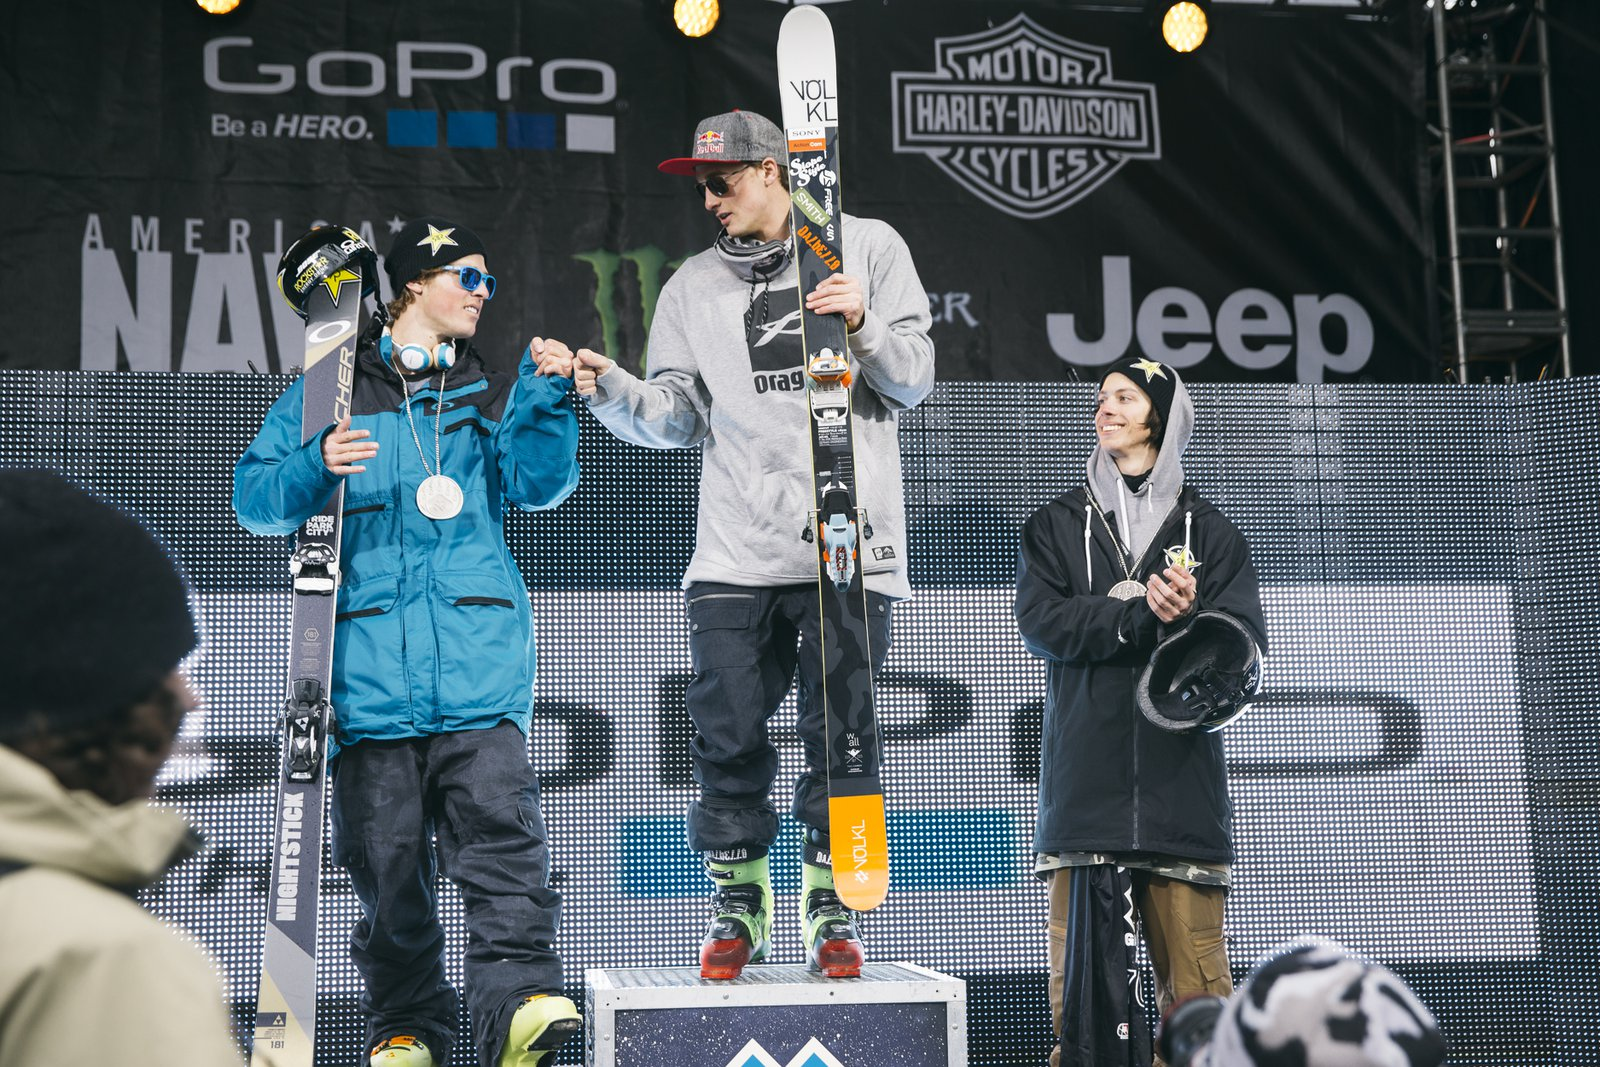 Goepper's 3rd X medal in a row